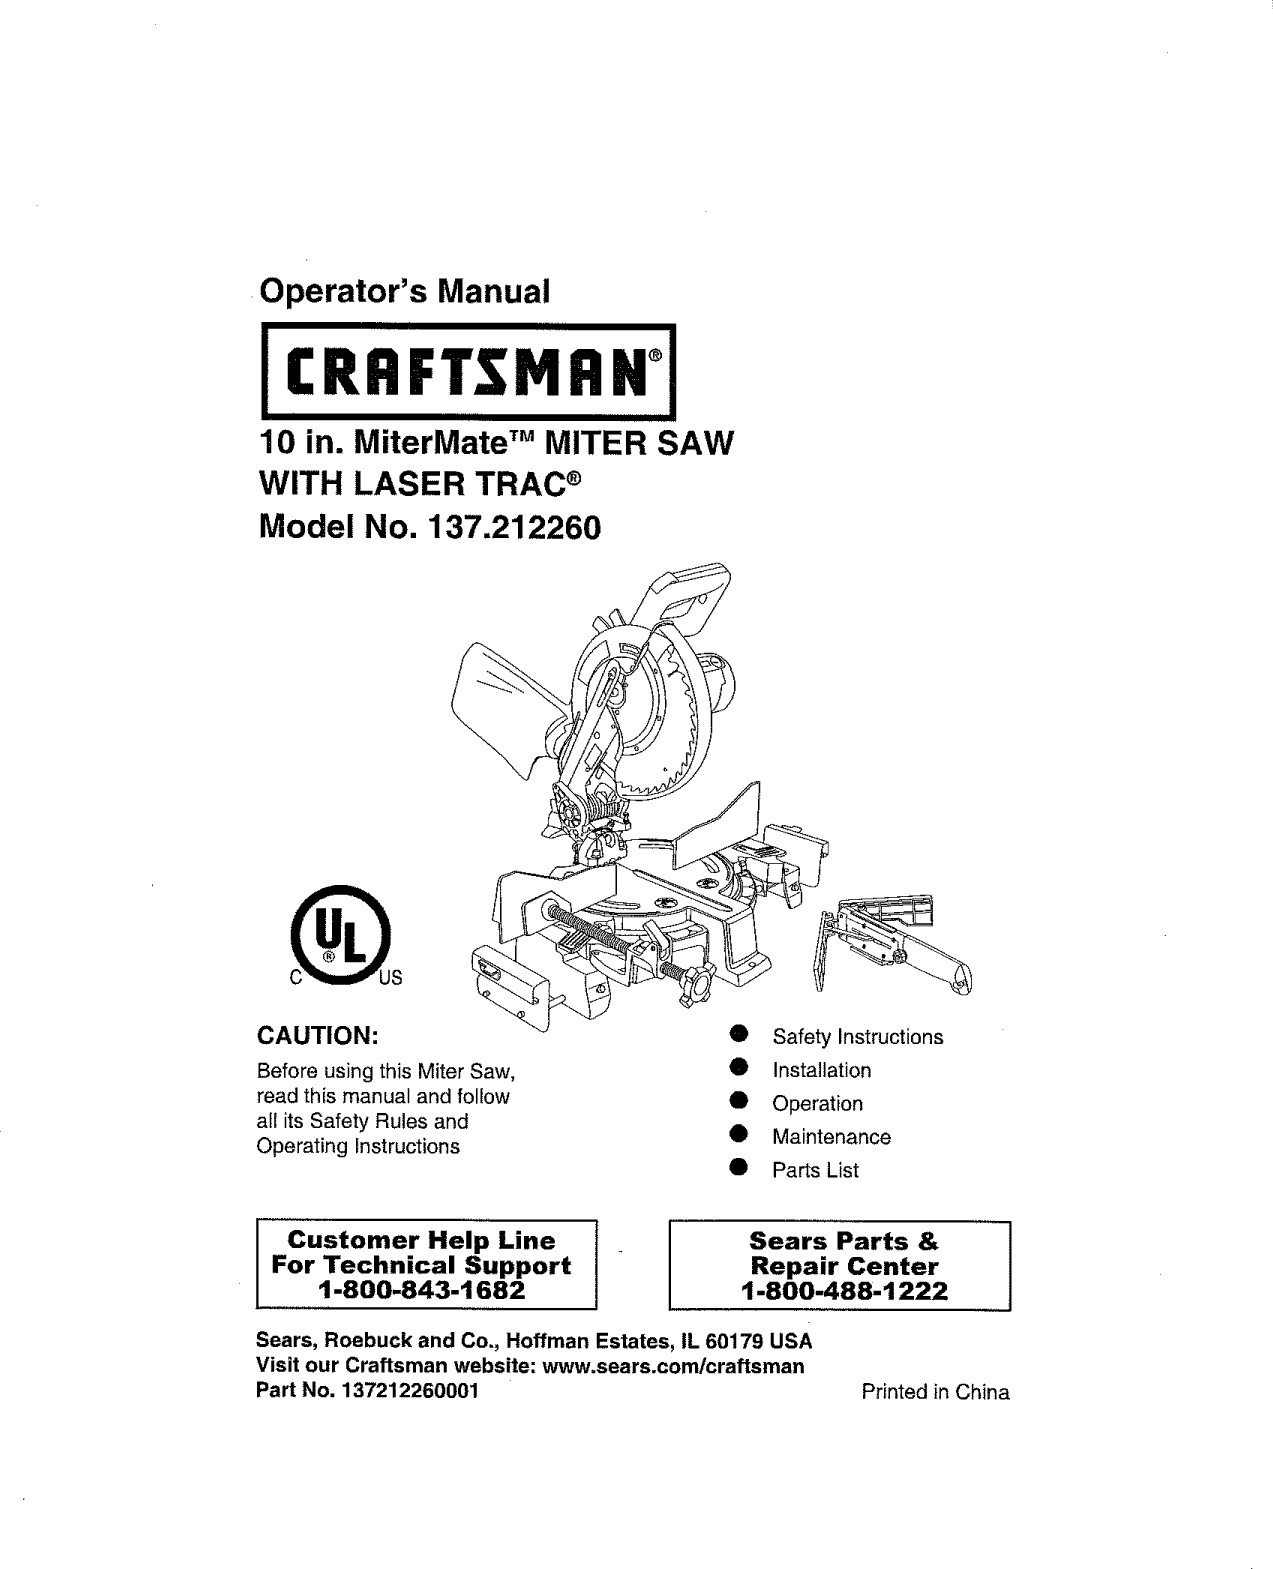 Craftsman 137212260 User Manual Miter Saw Manuals And Guides L1002157 Extension Cord Circuit Breaker From Searscom